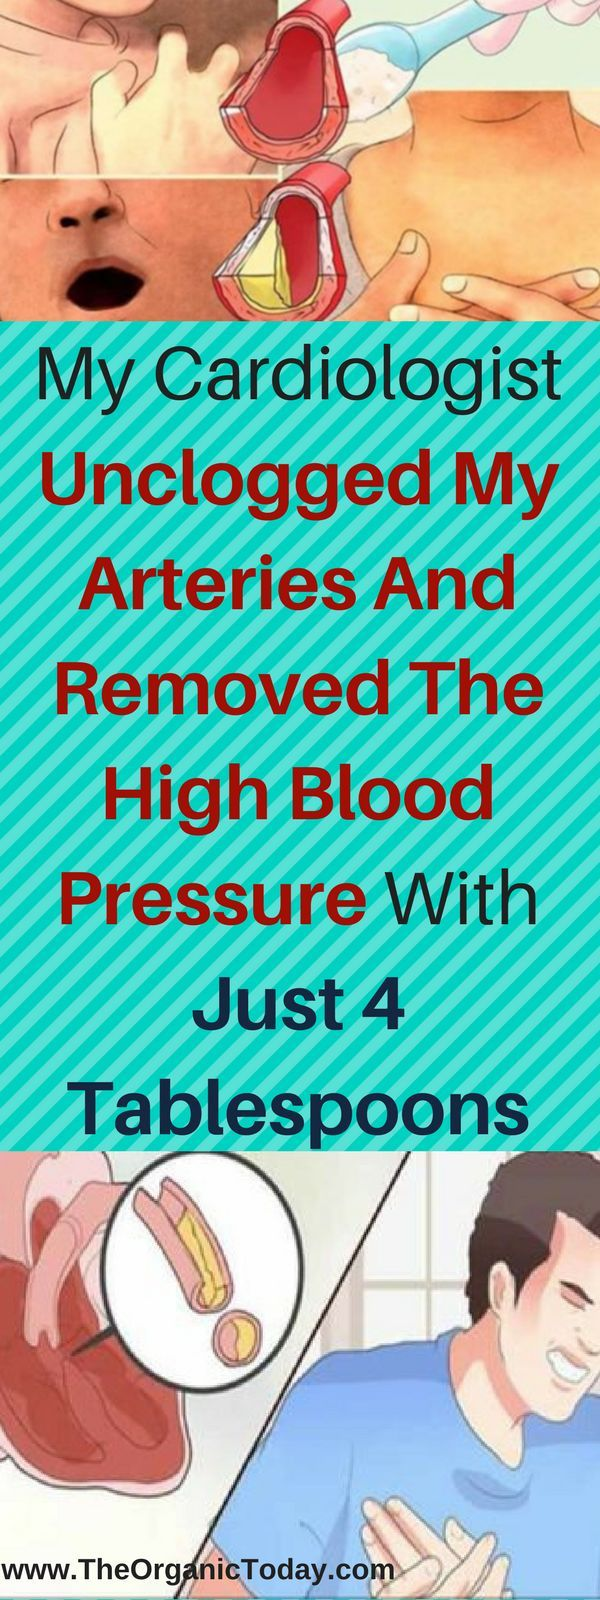 285 best exercise for high blood pressure images on pinterest my cardiologist unclogged my arteries and removed the high blood pressure with just 4 tablespoons nvjuhfo Choice Image